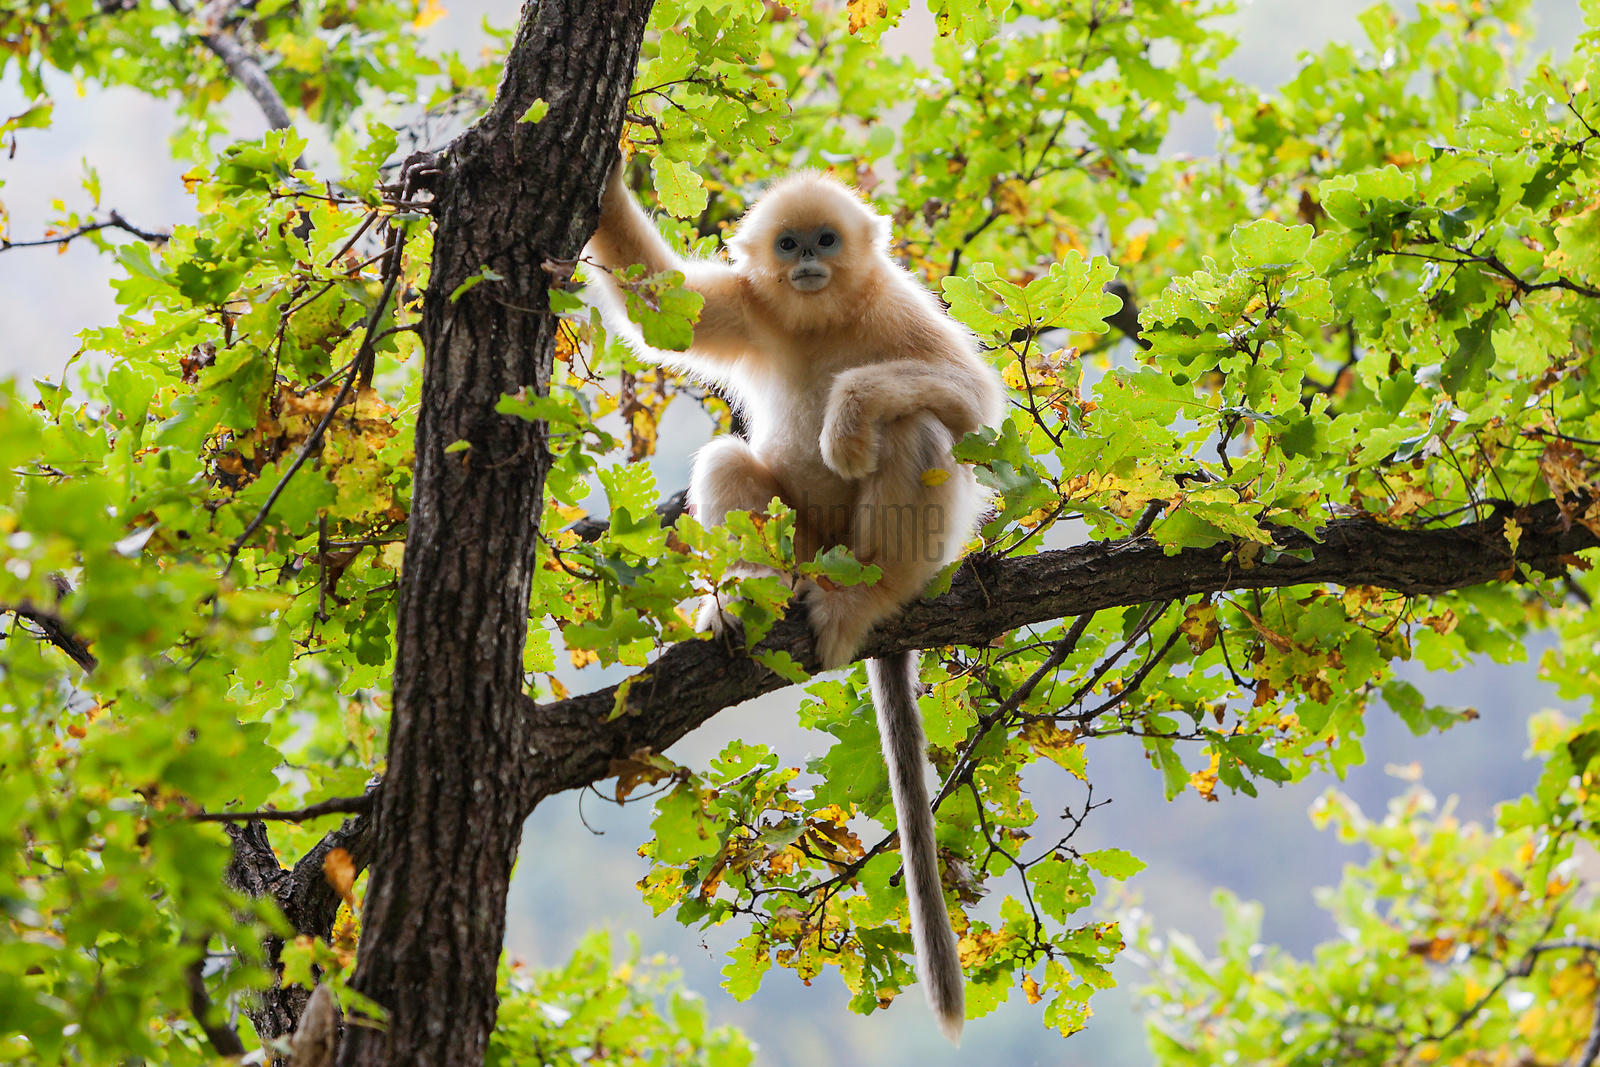 The golden snub-nosed monkey (Rhinopithecus roxellana)